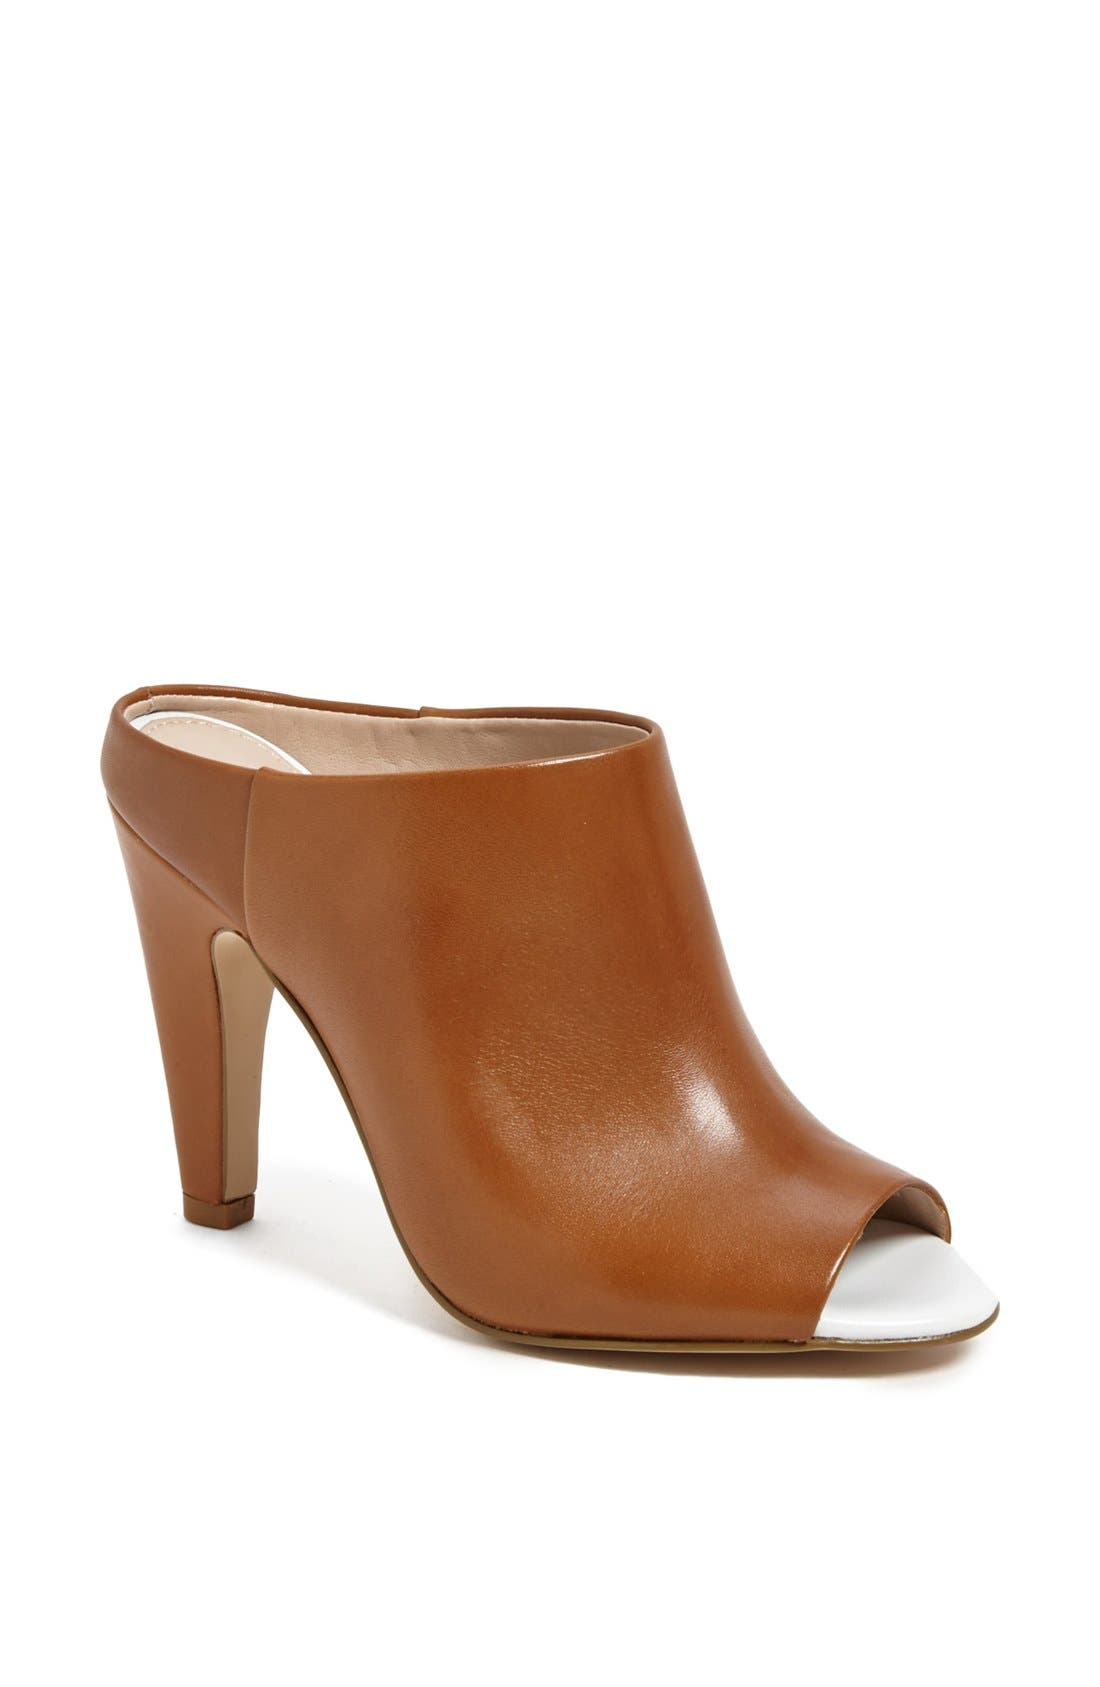 Main Image - French Connection 'Randy' Mule